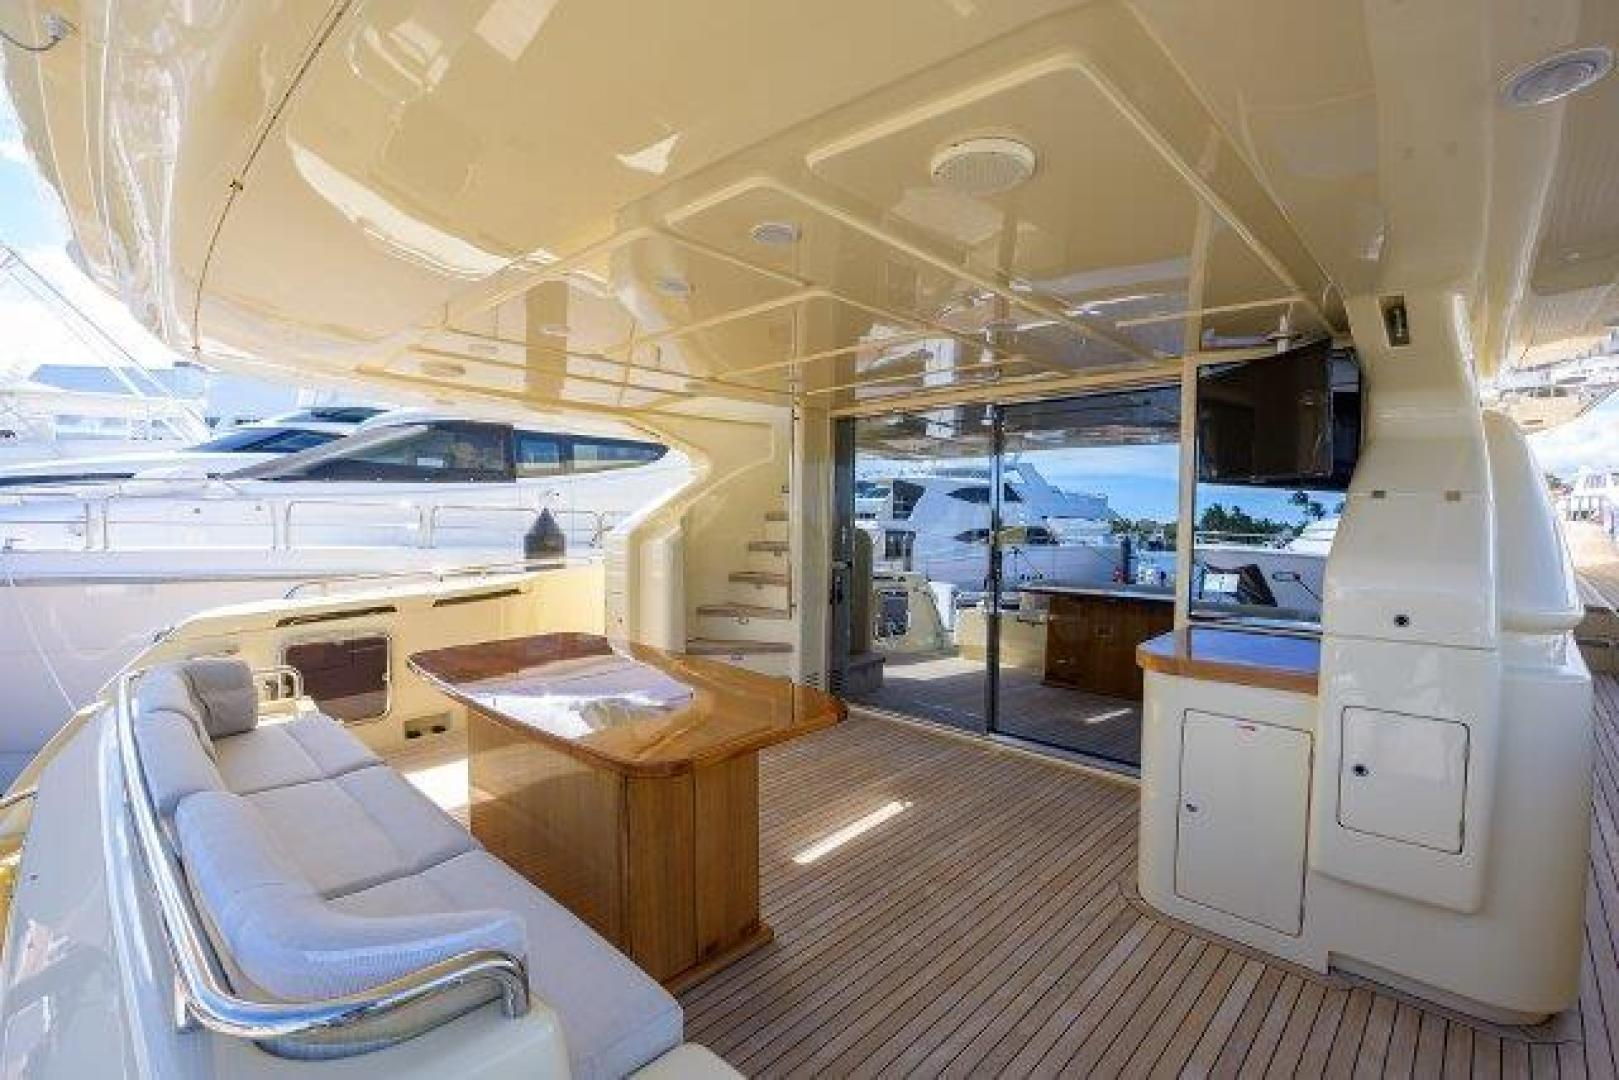 Ferretti Yachts-Altura 840 2010-MISS ALLIED Jupiter-Florida-United States-Aft Deck-1518354 | Thumbnail